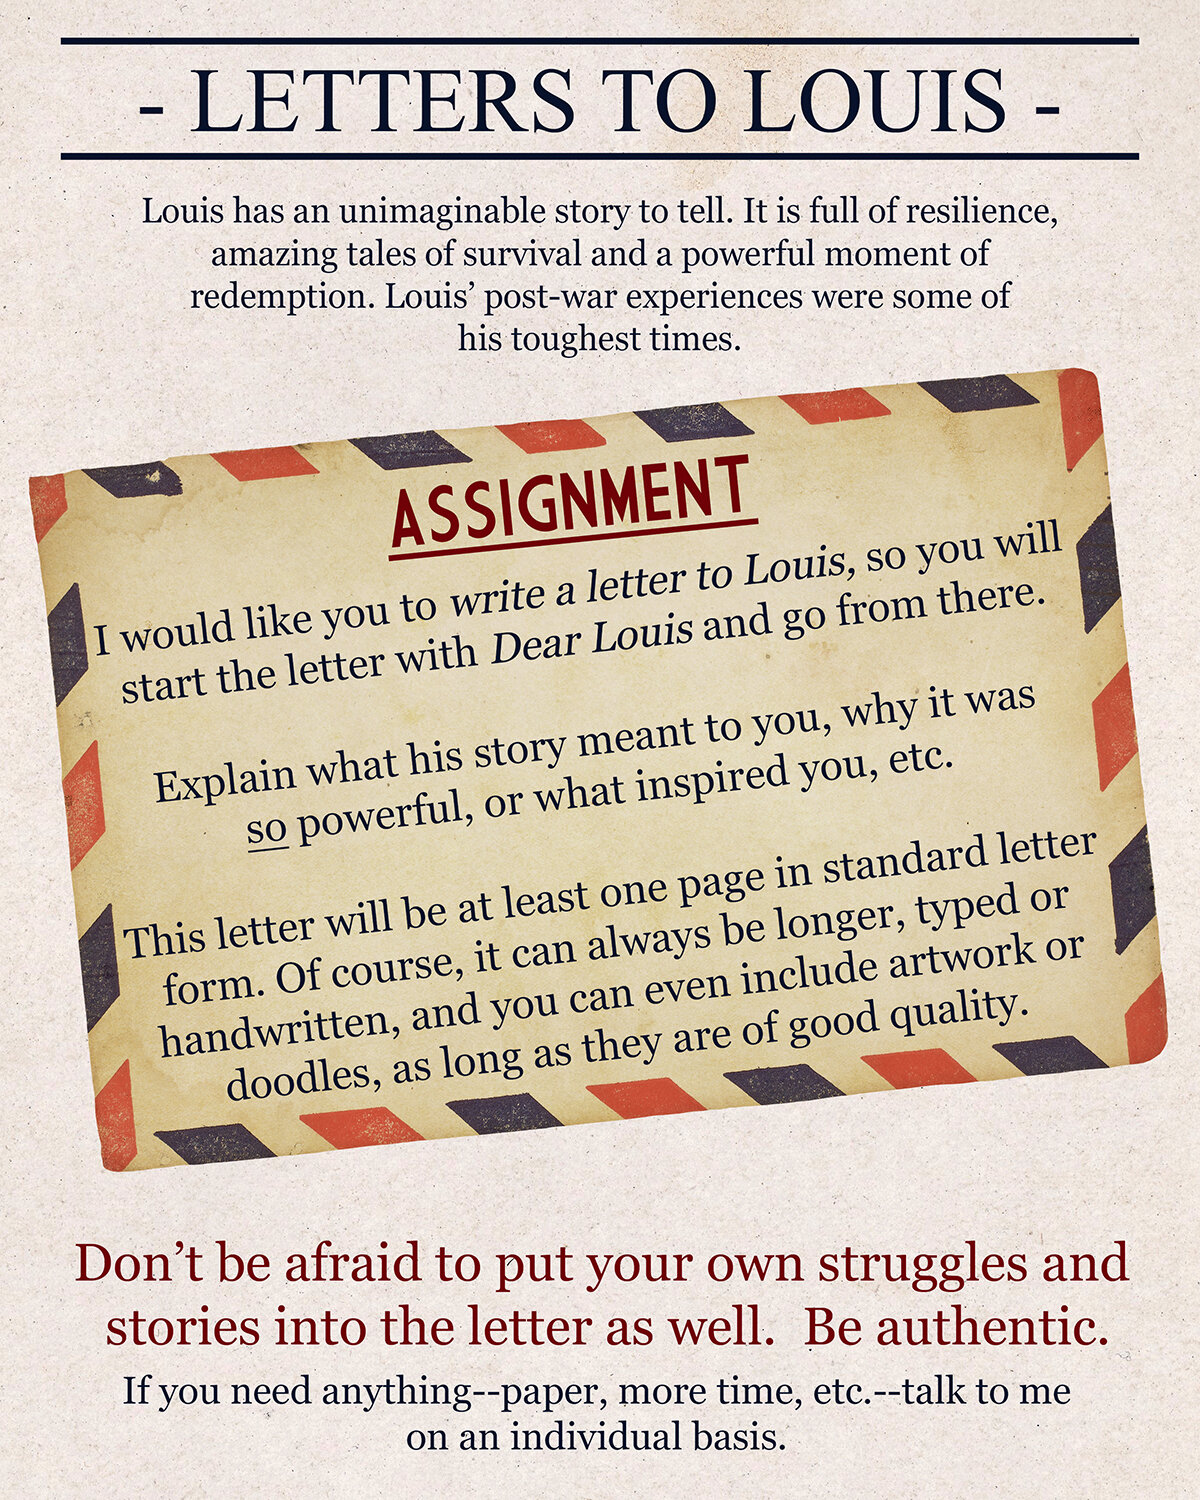 Letters To Louis PostReading Activity.jpg